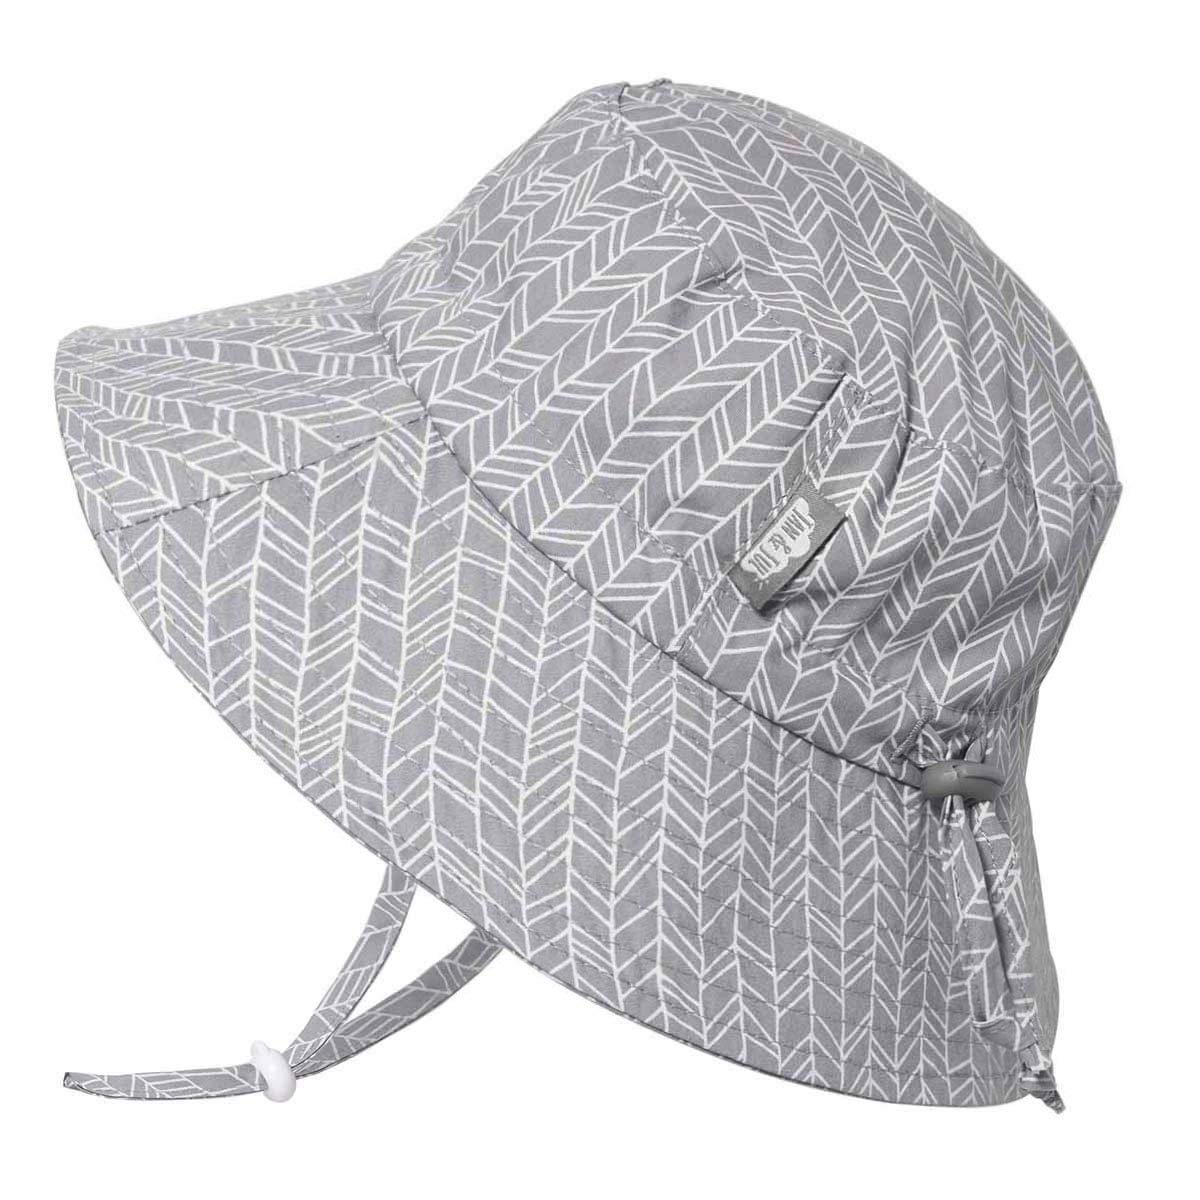 JAN & JUL Children's Foldable Summer Sunhat 50 UPF, Drawstring Adjustable, Stay-on Chin Strap (L: 2-5Y, Grey Herringbone) by JAN & JUL